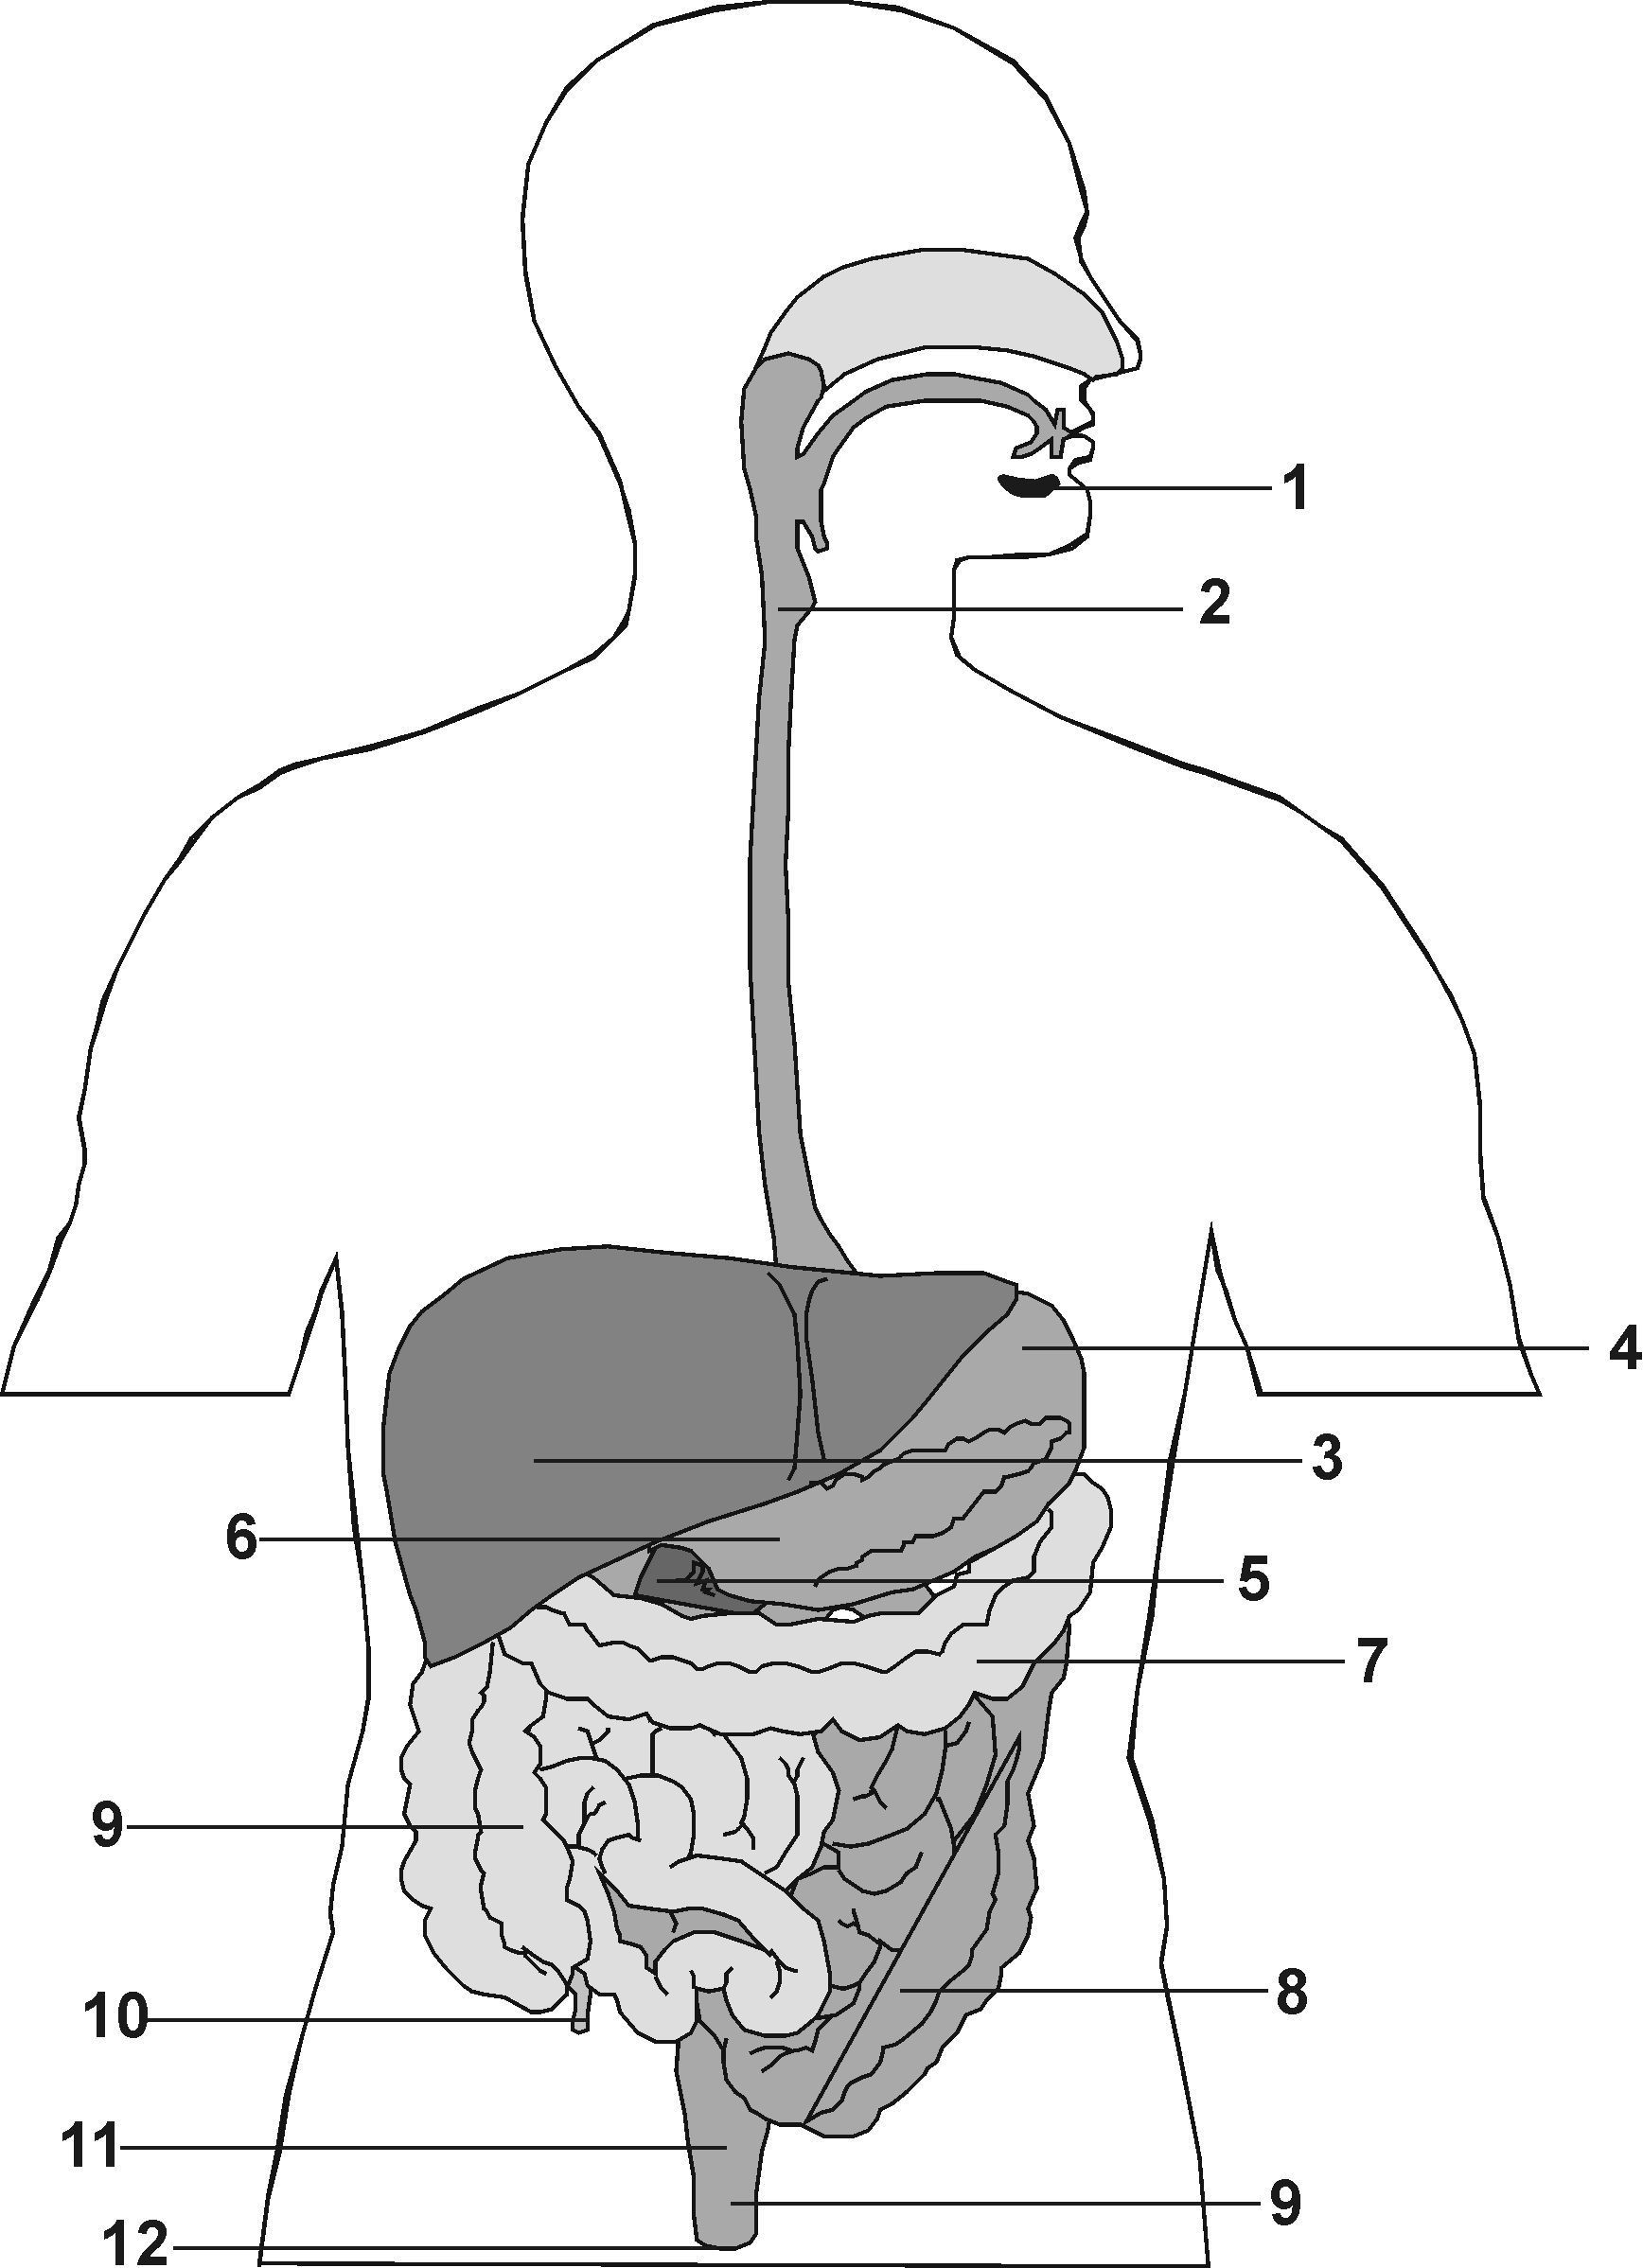 Digestive System Worksheets Middle School the Human Digestive System Worksheet Answers